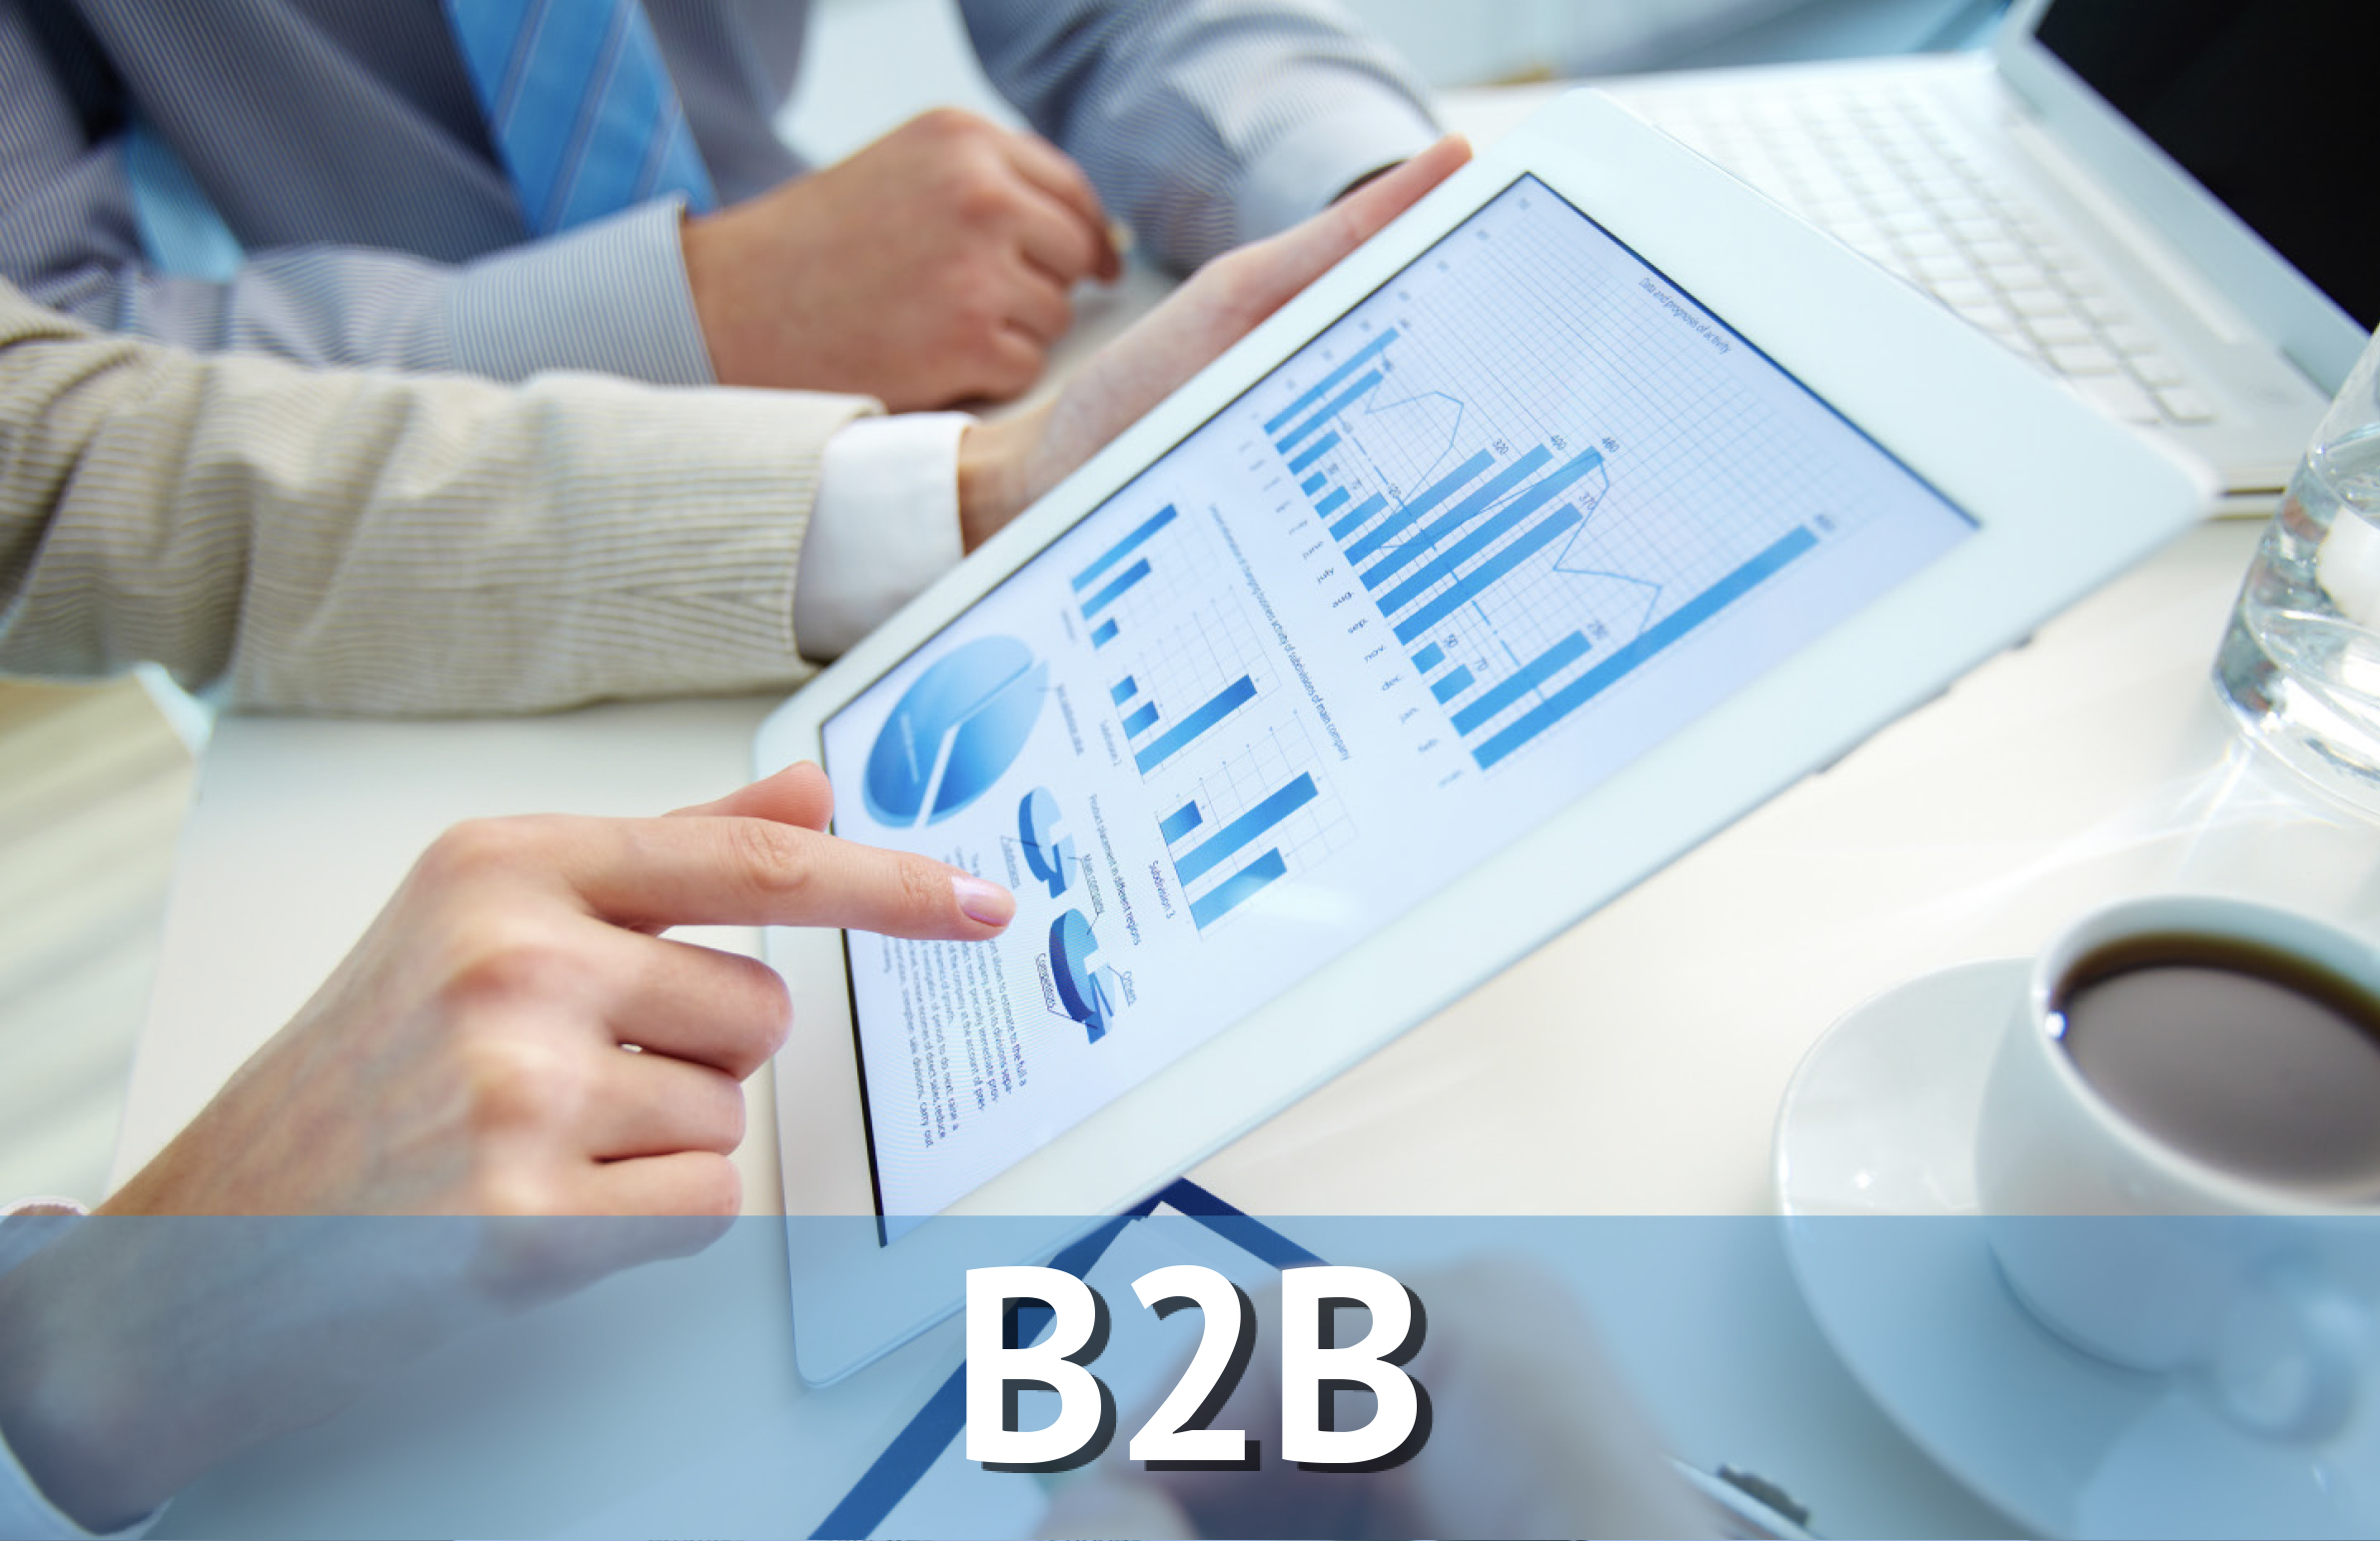 Hand Pointing to Graphs on Tablet Screen, Labeled B2B